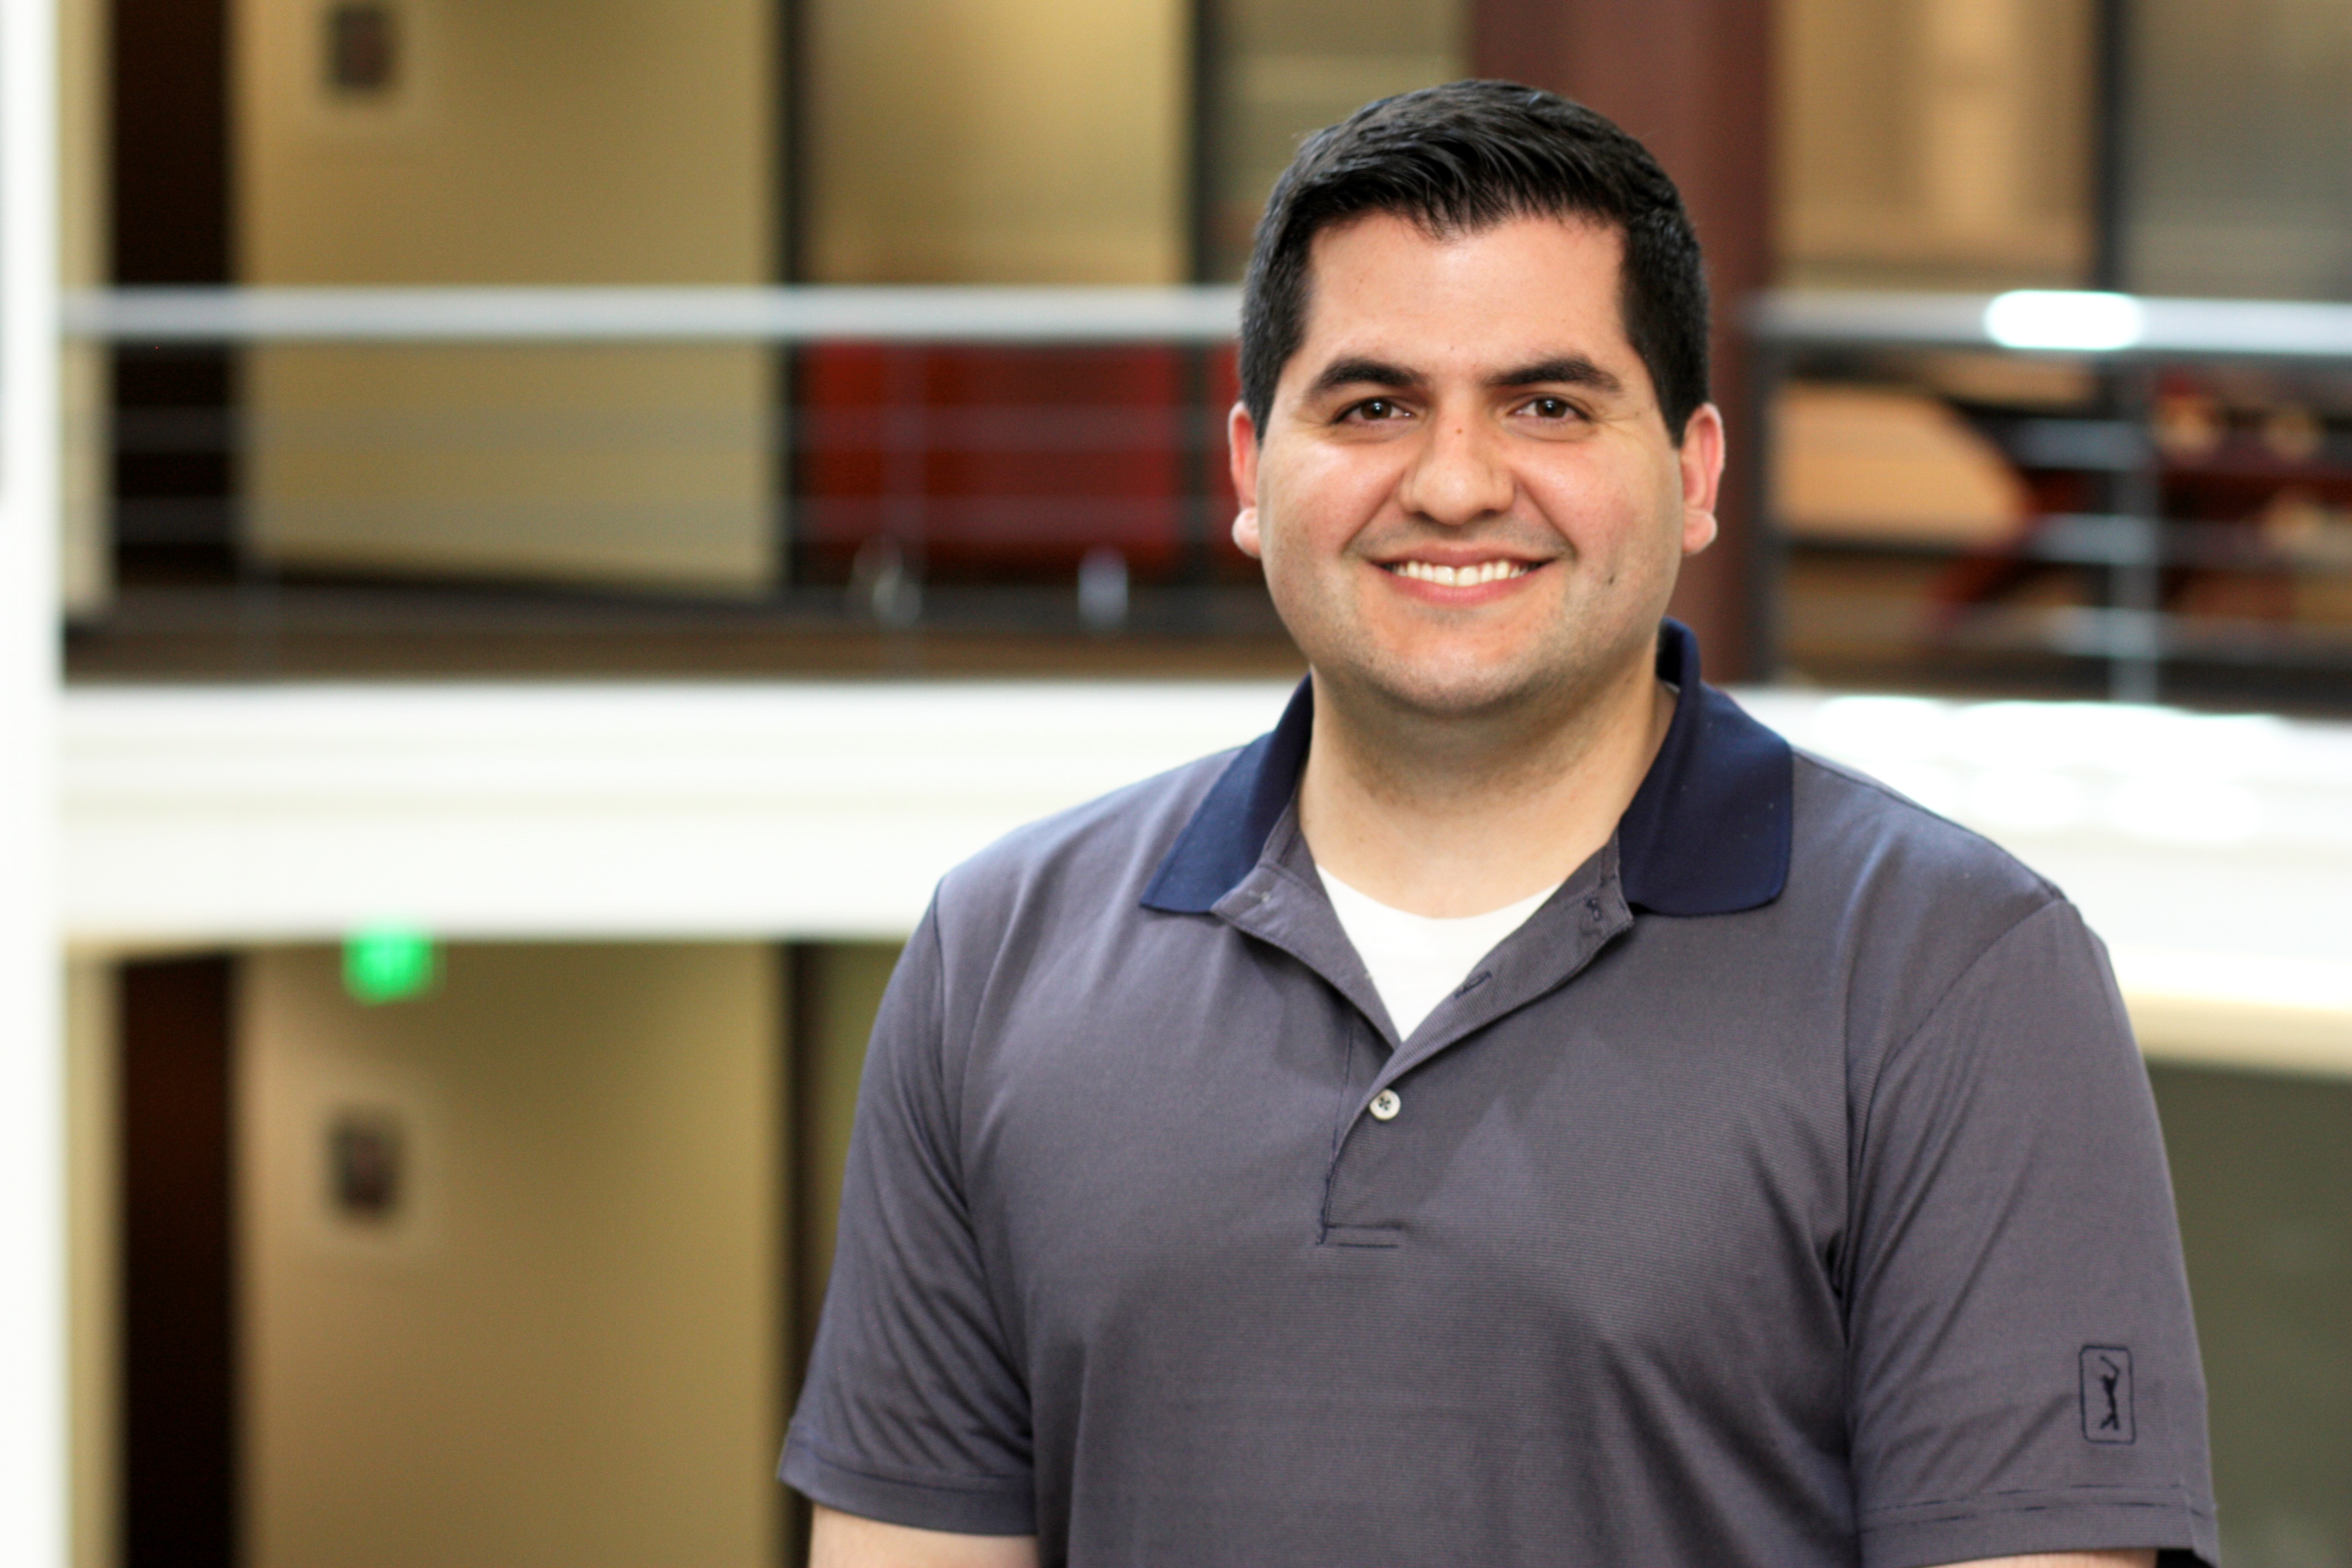 Giovanni Giannola, FIU computer engineering grad and CEO of Globalesm, Inc.